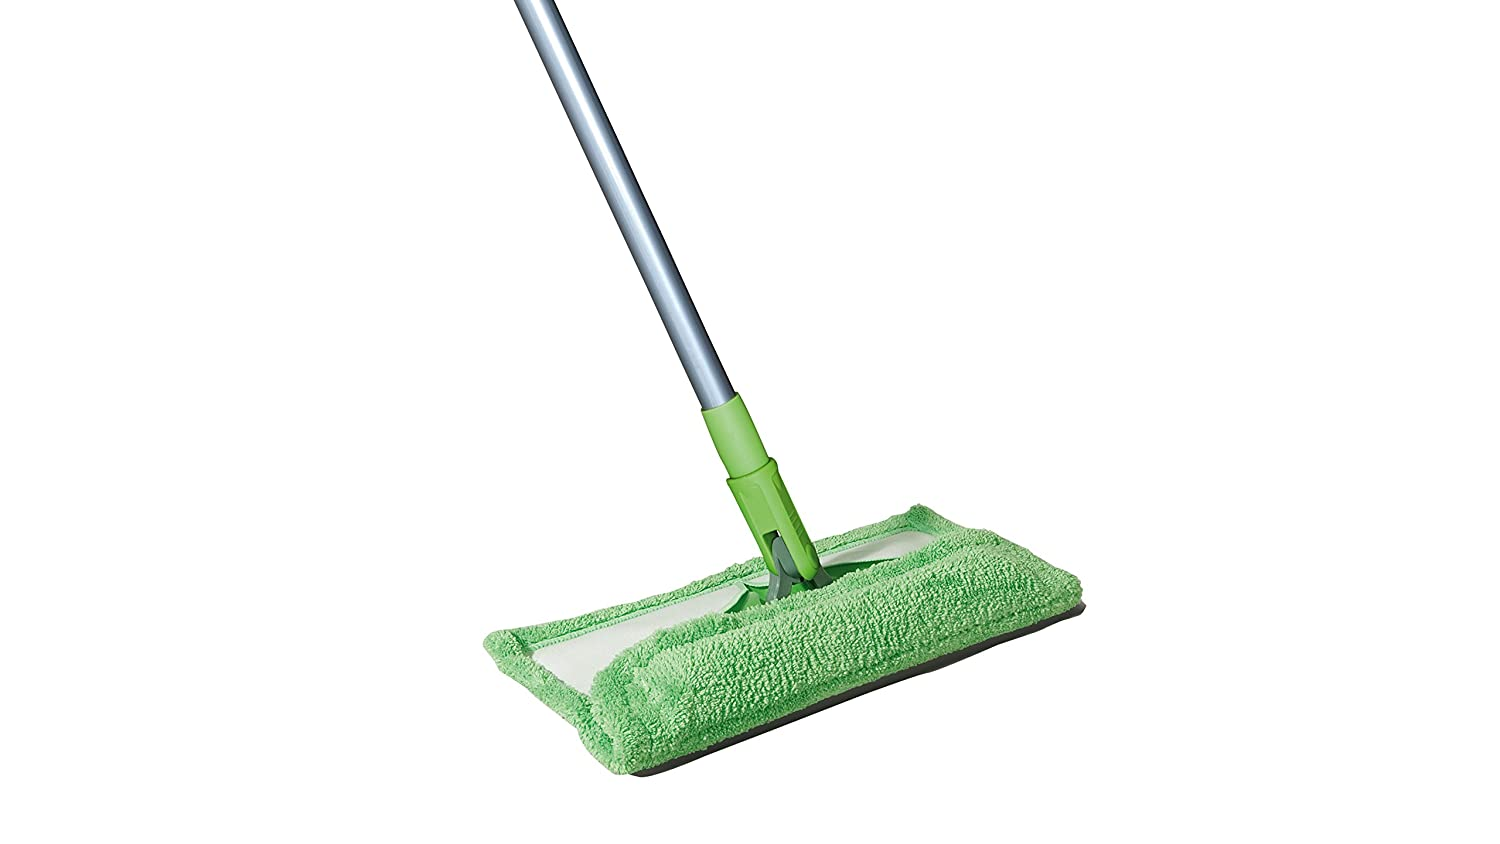 Scotch brite bathroom floor cleaner refills - Scotch Brite Flat Mop And Refill Combo For Magic Easy Floor Cleaning Amazon In Home Improvement